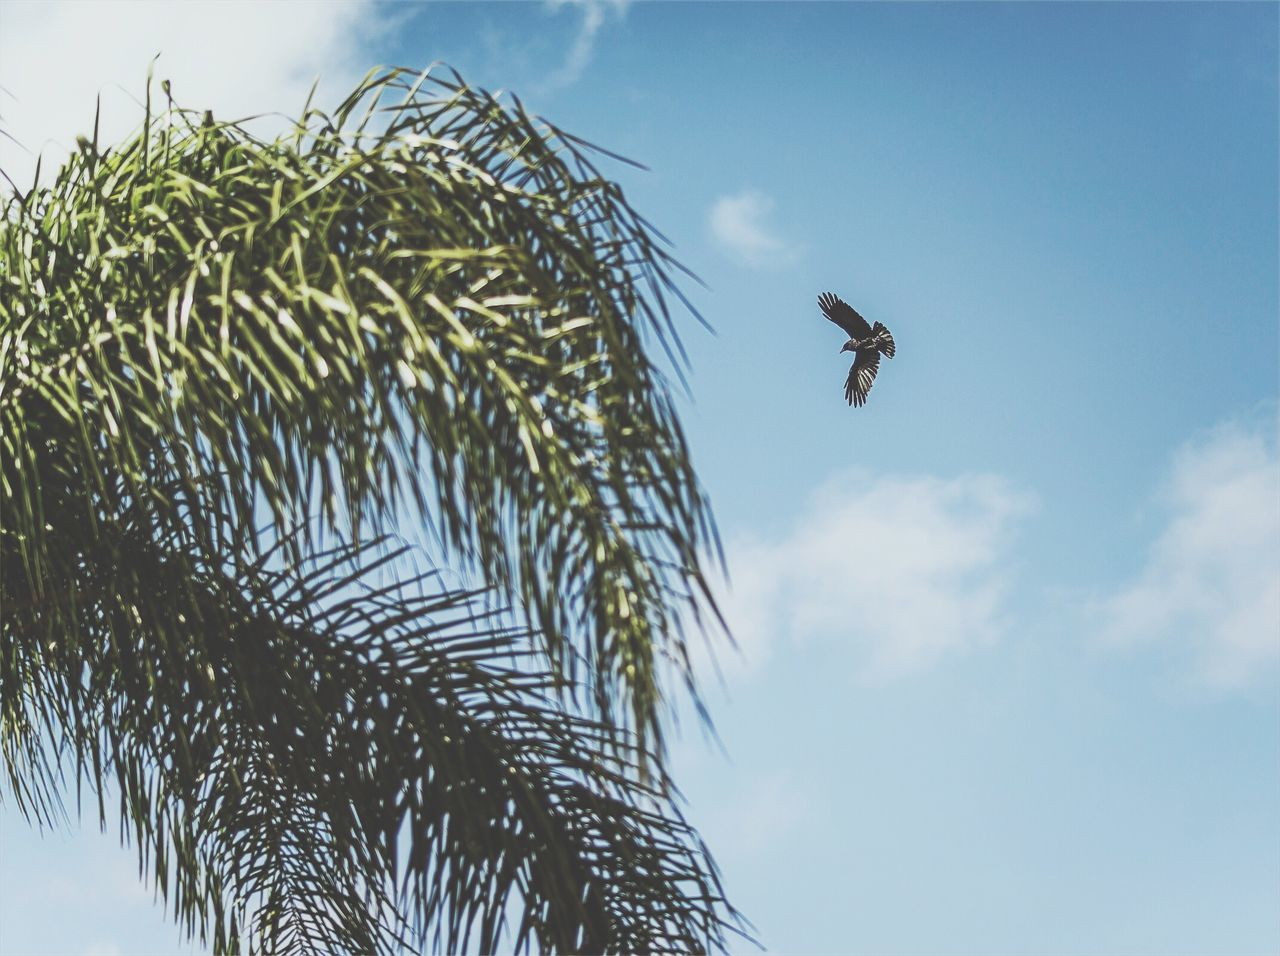 Birds Sky Low Angle View One Animal Day Nature Animal Themes Flying No People Outdoors Close-up Bird Liquor